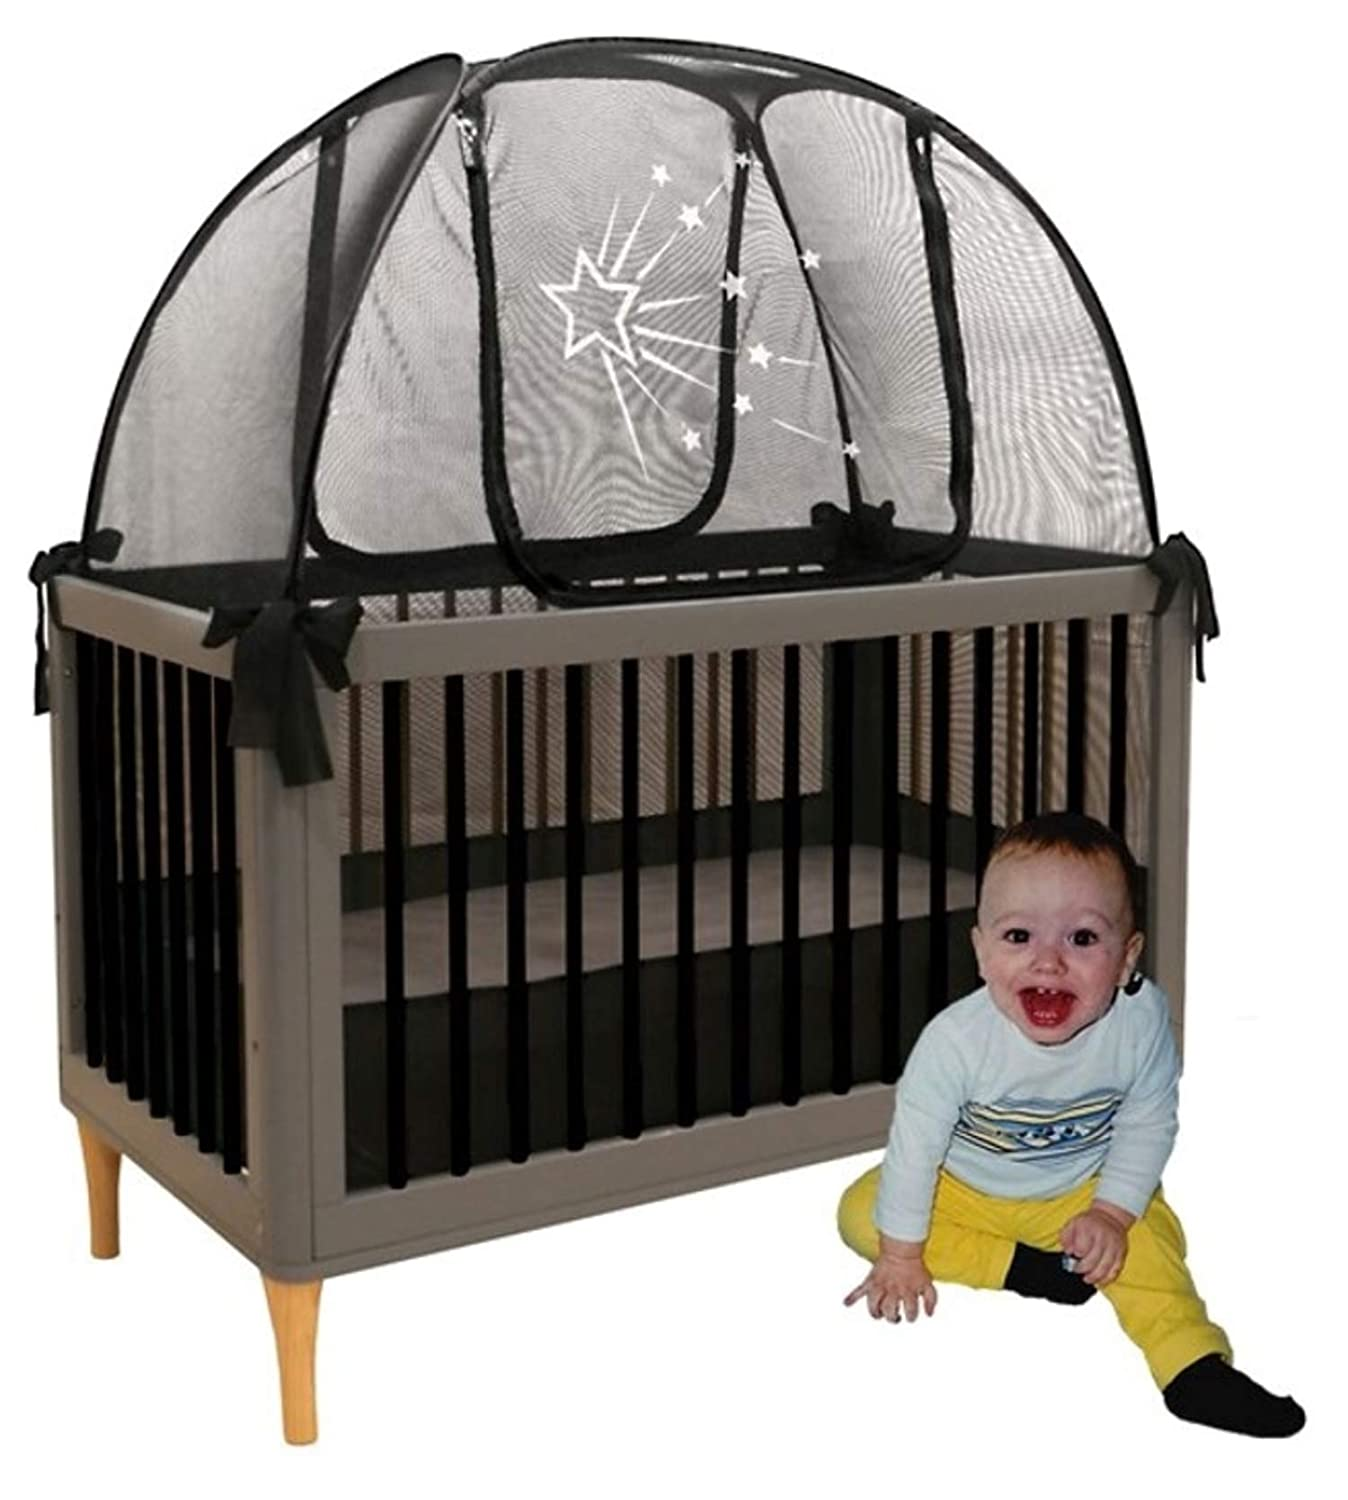 Aussie Cot Net Co Baby Crib Safety Tents - Premium Crib Tent to Keep Baby from Climbing Out - Clear View See-Through Black Crib Netting - Mosquito Net - Pop-up Crib Tent Canopy to Keep Baby in